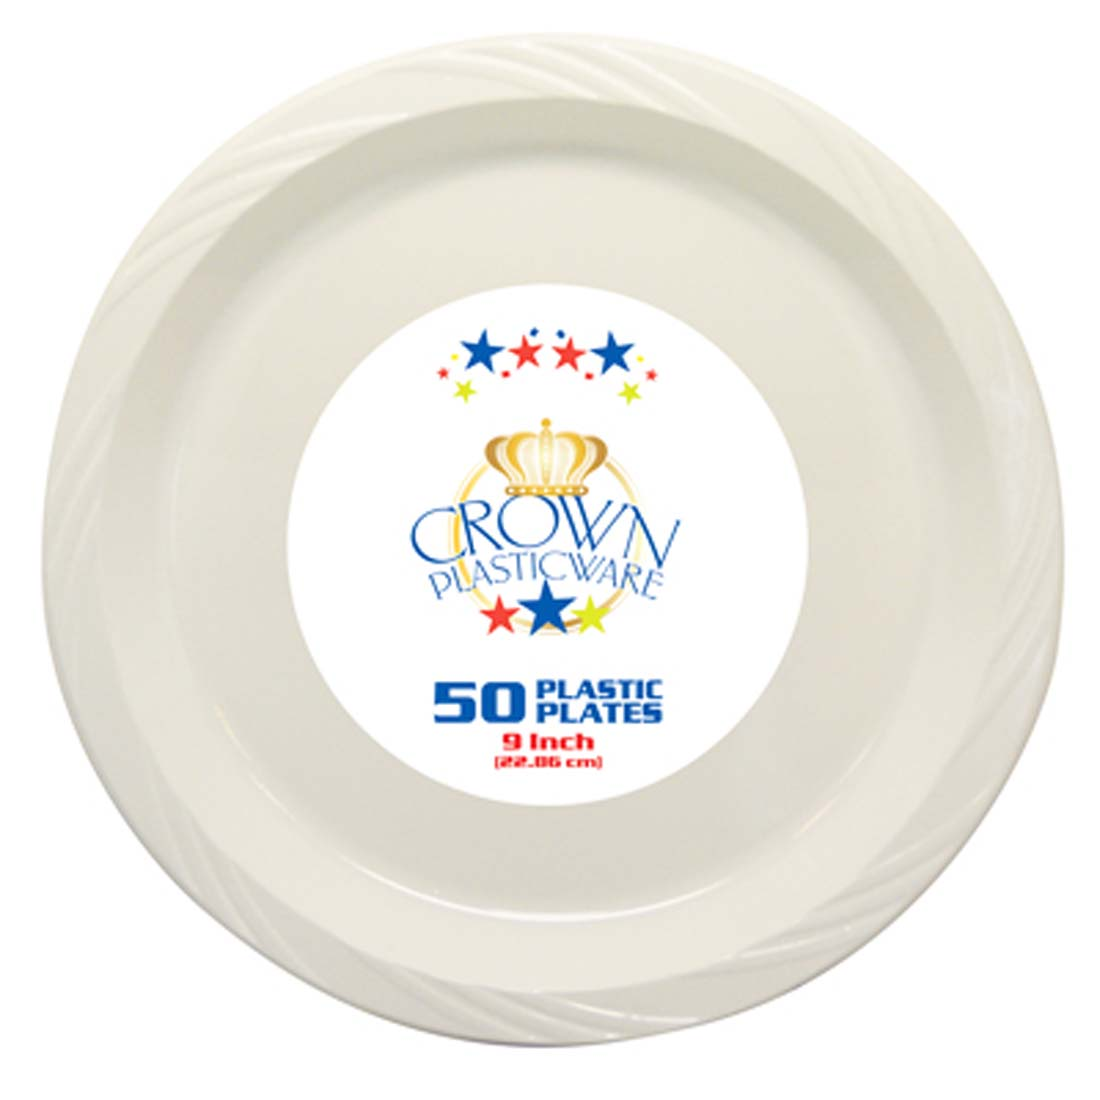 View CROWN PLASTICWARE DINNER PLATE 50 CT 9 INCH WHITE